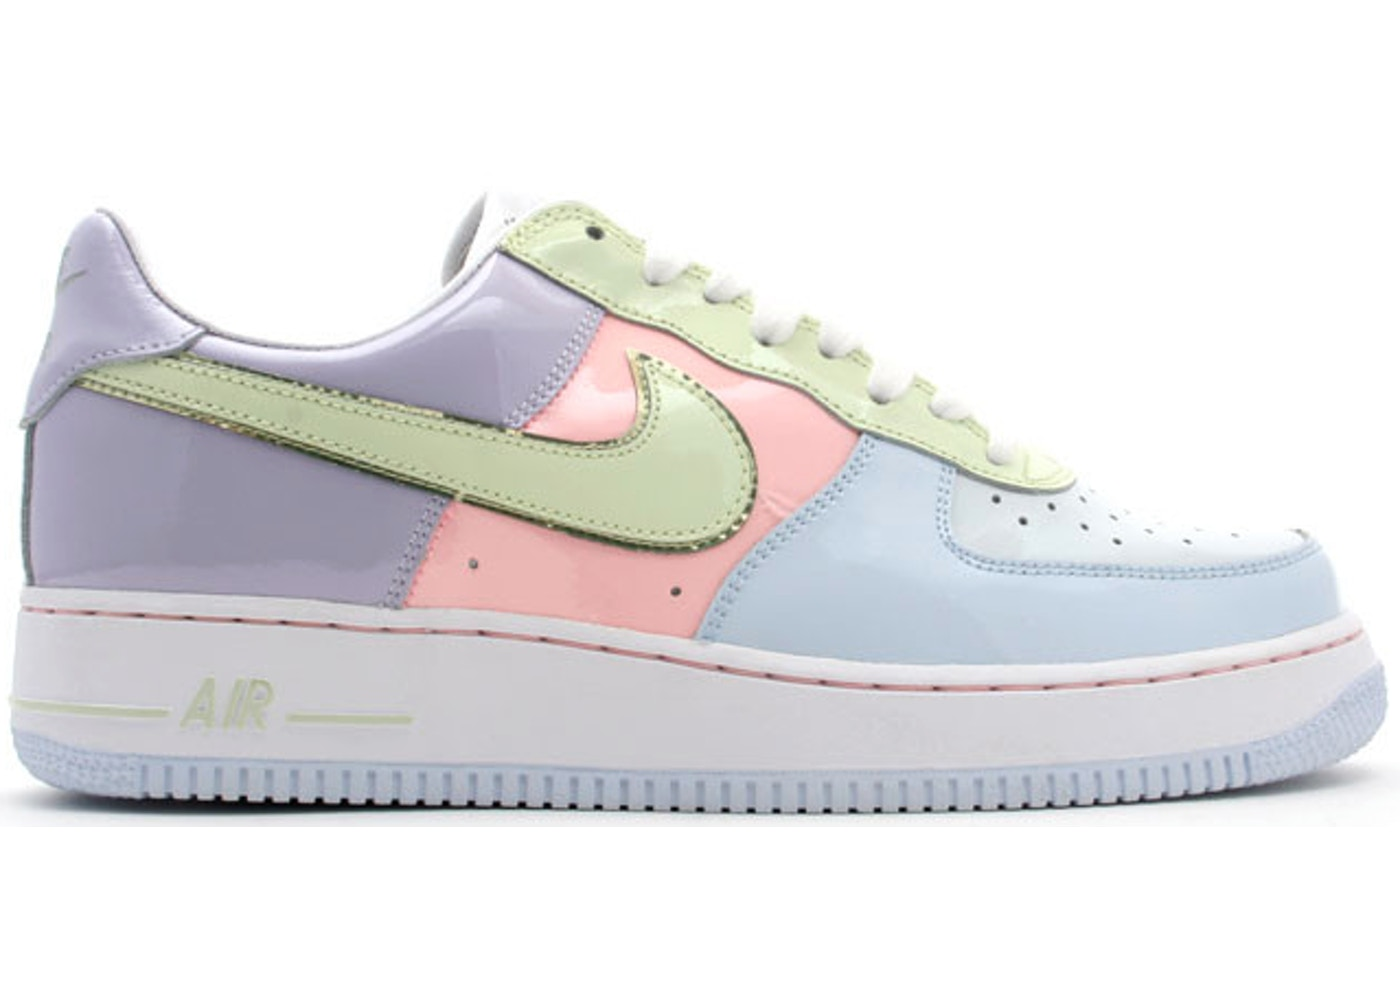 difícil montaje Disgusto  Nike Air Force 1 Low Easter Egg (2005) - 307334-531